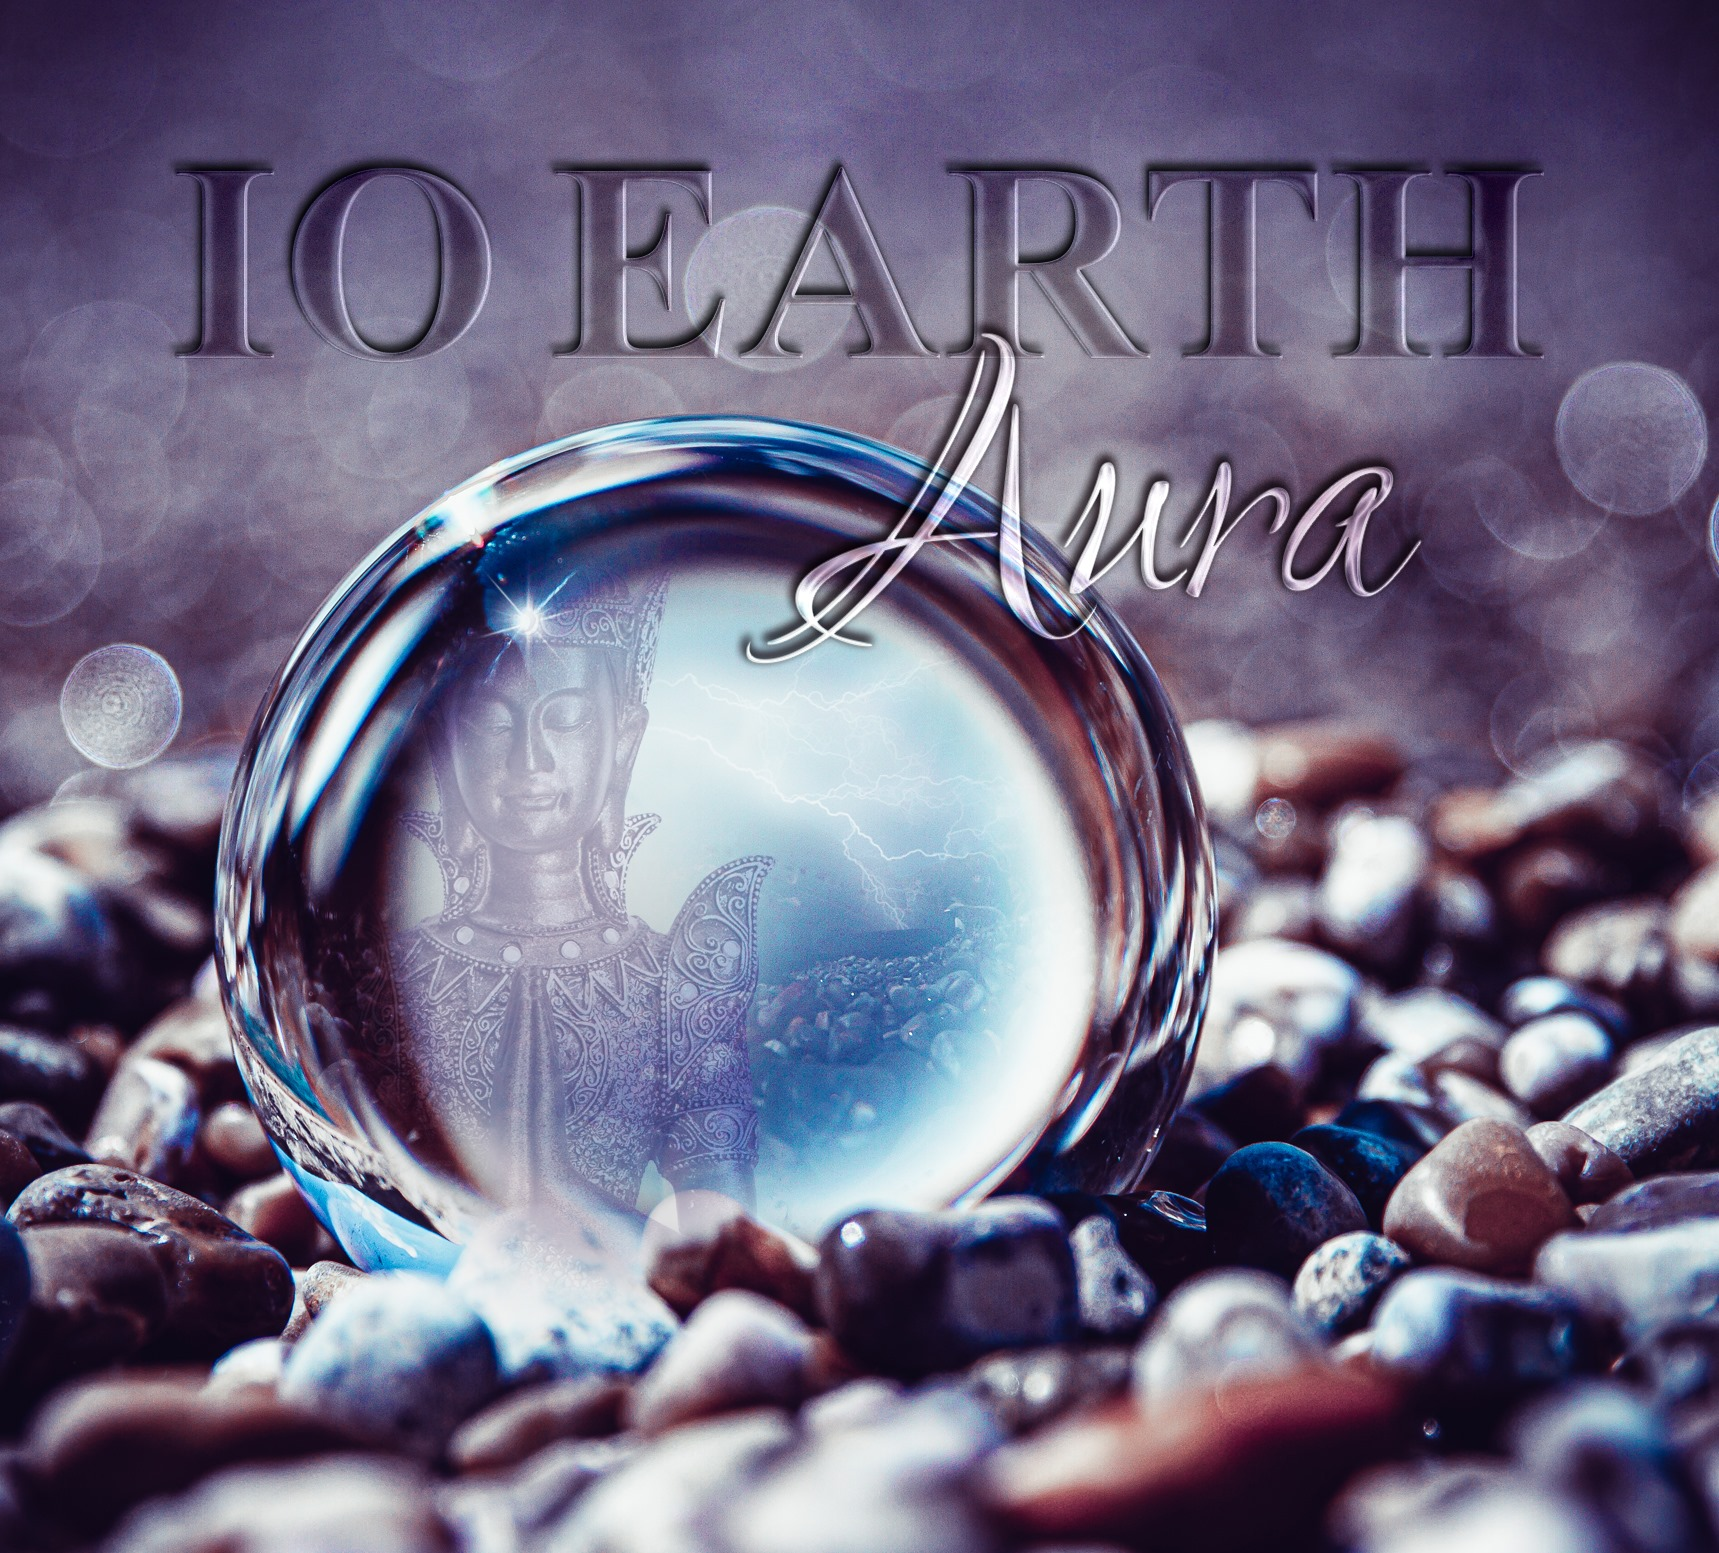 IO EARTH - Aura